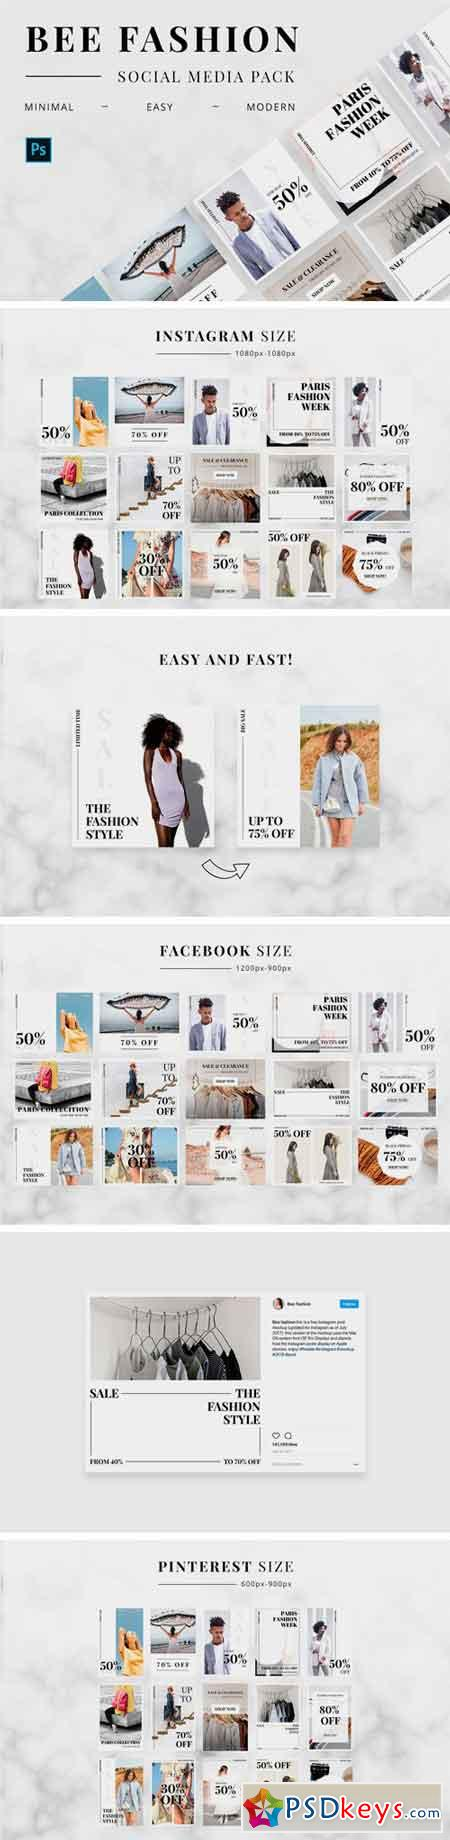 Bee Fashion Social Media Pack 2511622